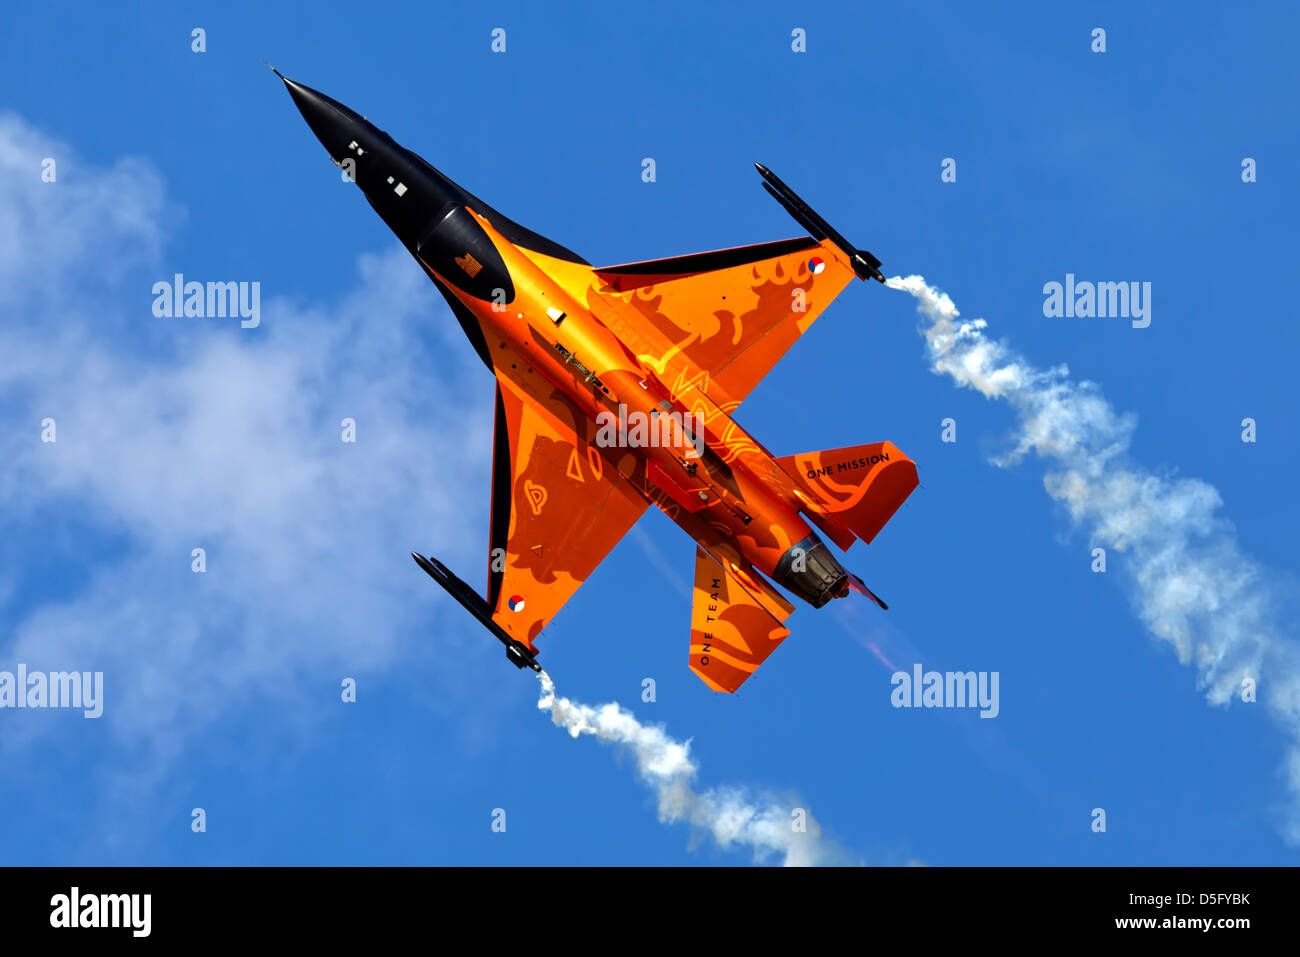 Royal Netherlands Air Force 323 Squadron General Dynamics F-16AM Fighting Falcon 'Orange Lion' at RIAT, - Stock Image